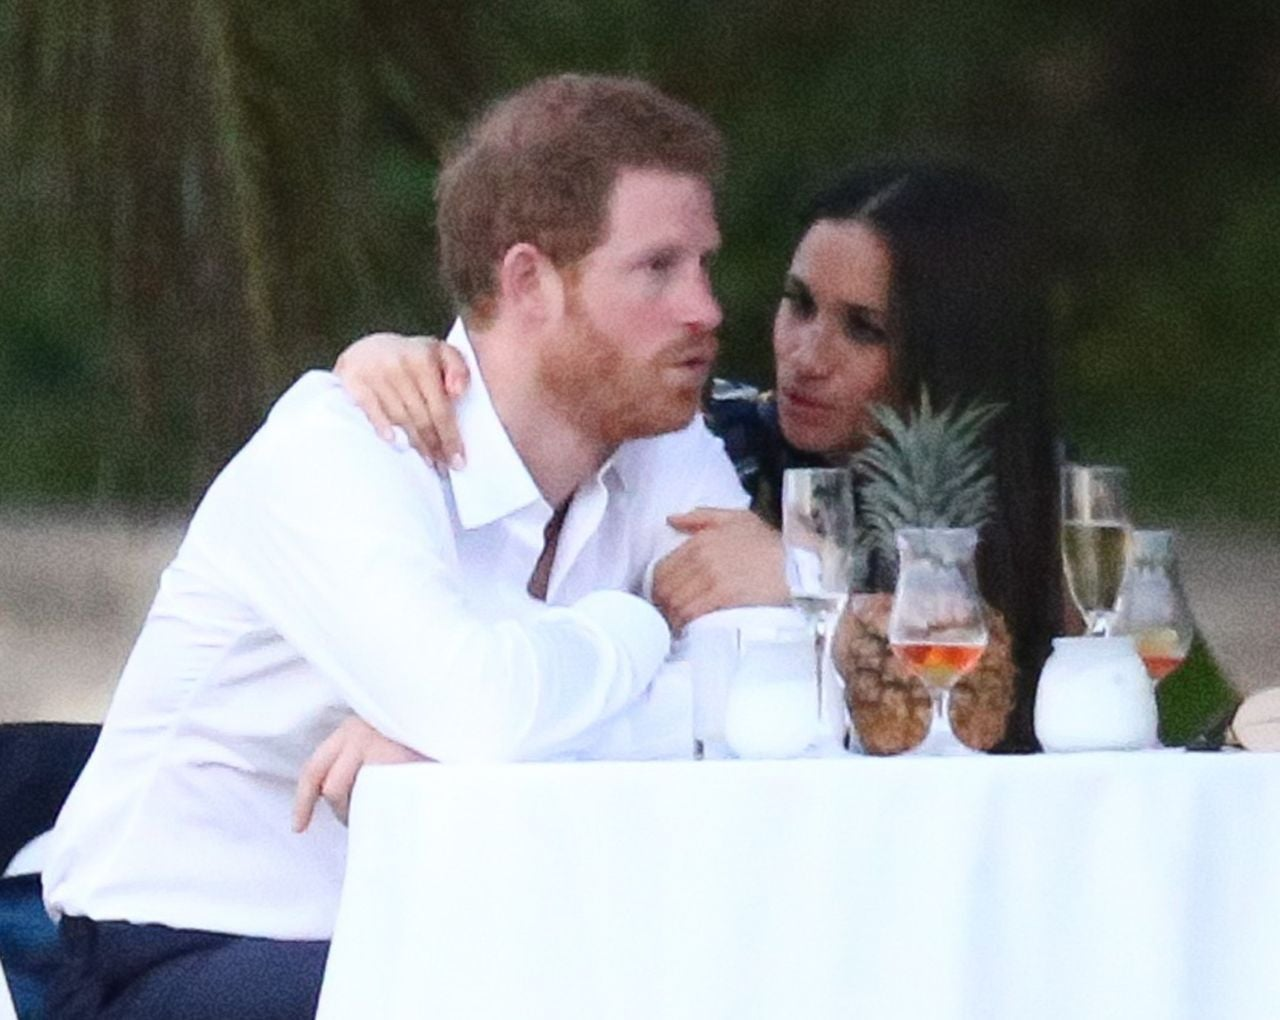 Prince Harry and Meghan Markle Show Adorable PDA at ...